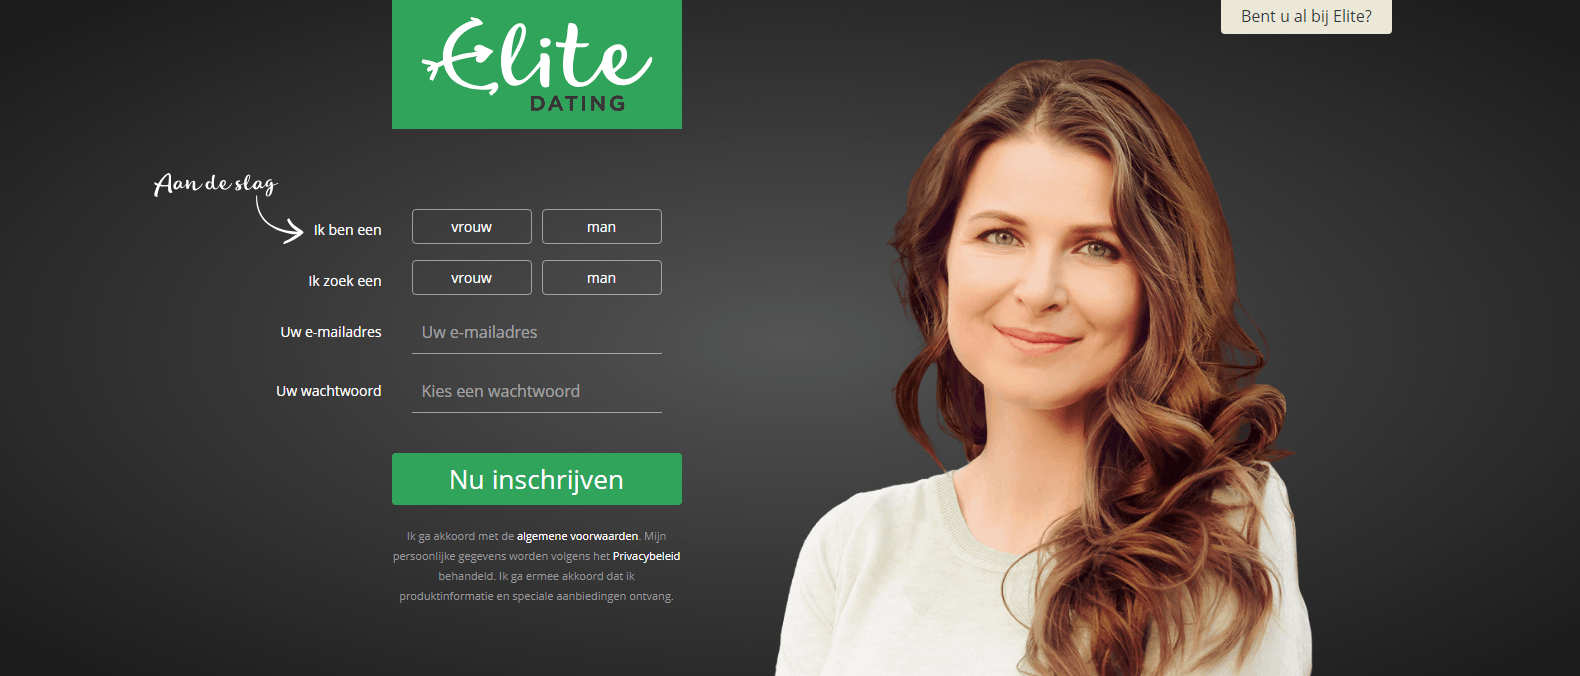 is online dating meer succesvolle